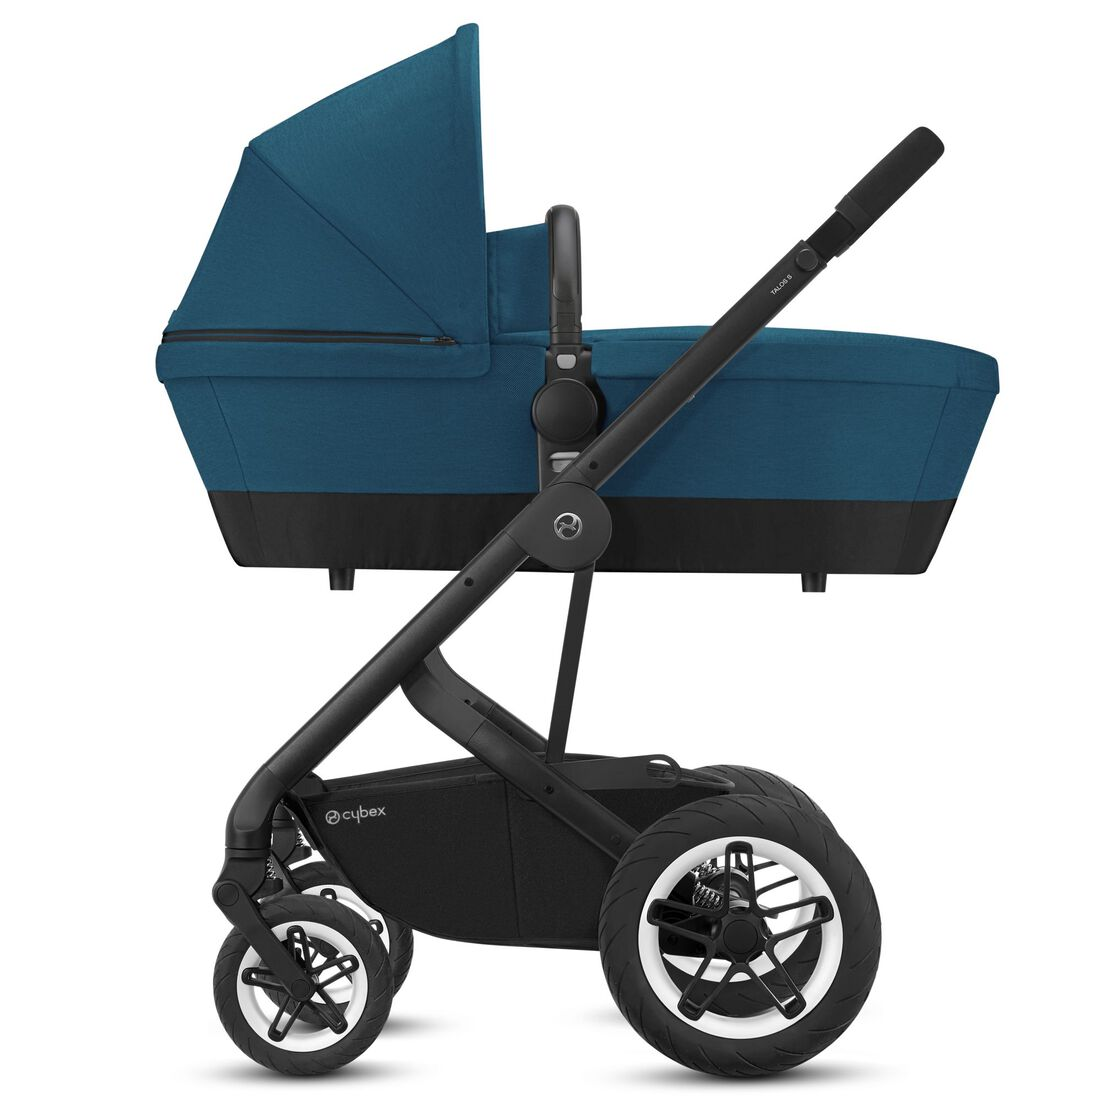 CYBEX Talos S 2-in-1 - River Blue in River Blue large image number 2